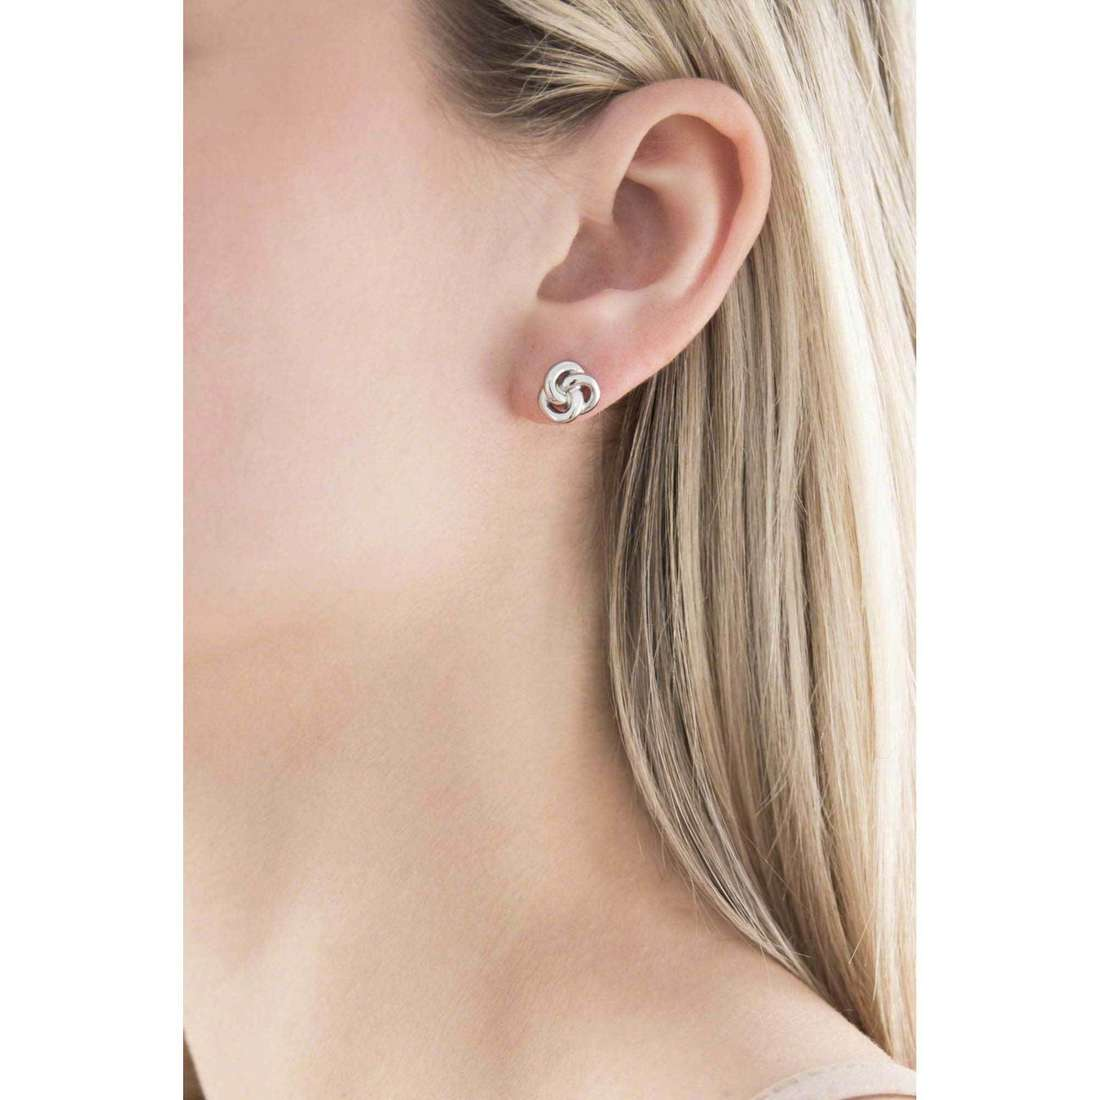 Fossil boucles d'oreille Summer 15 femme JF01363040 indosso